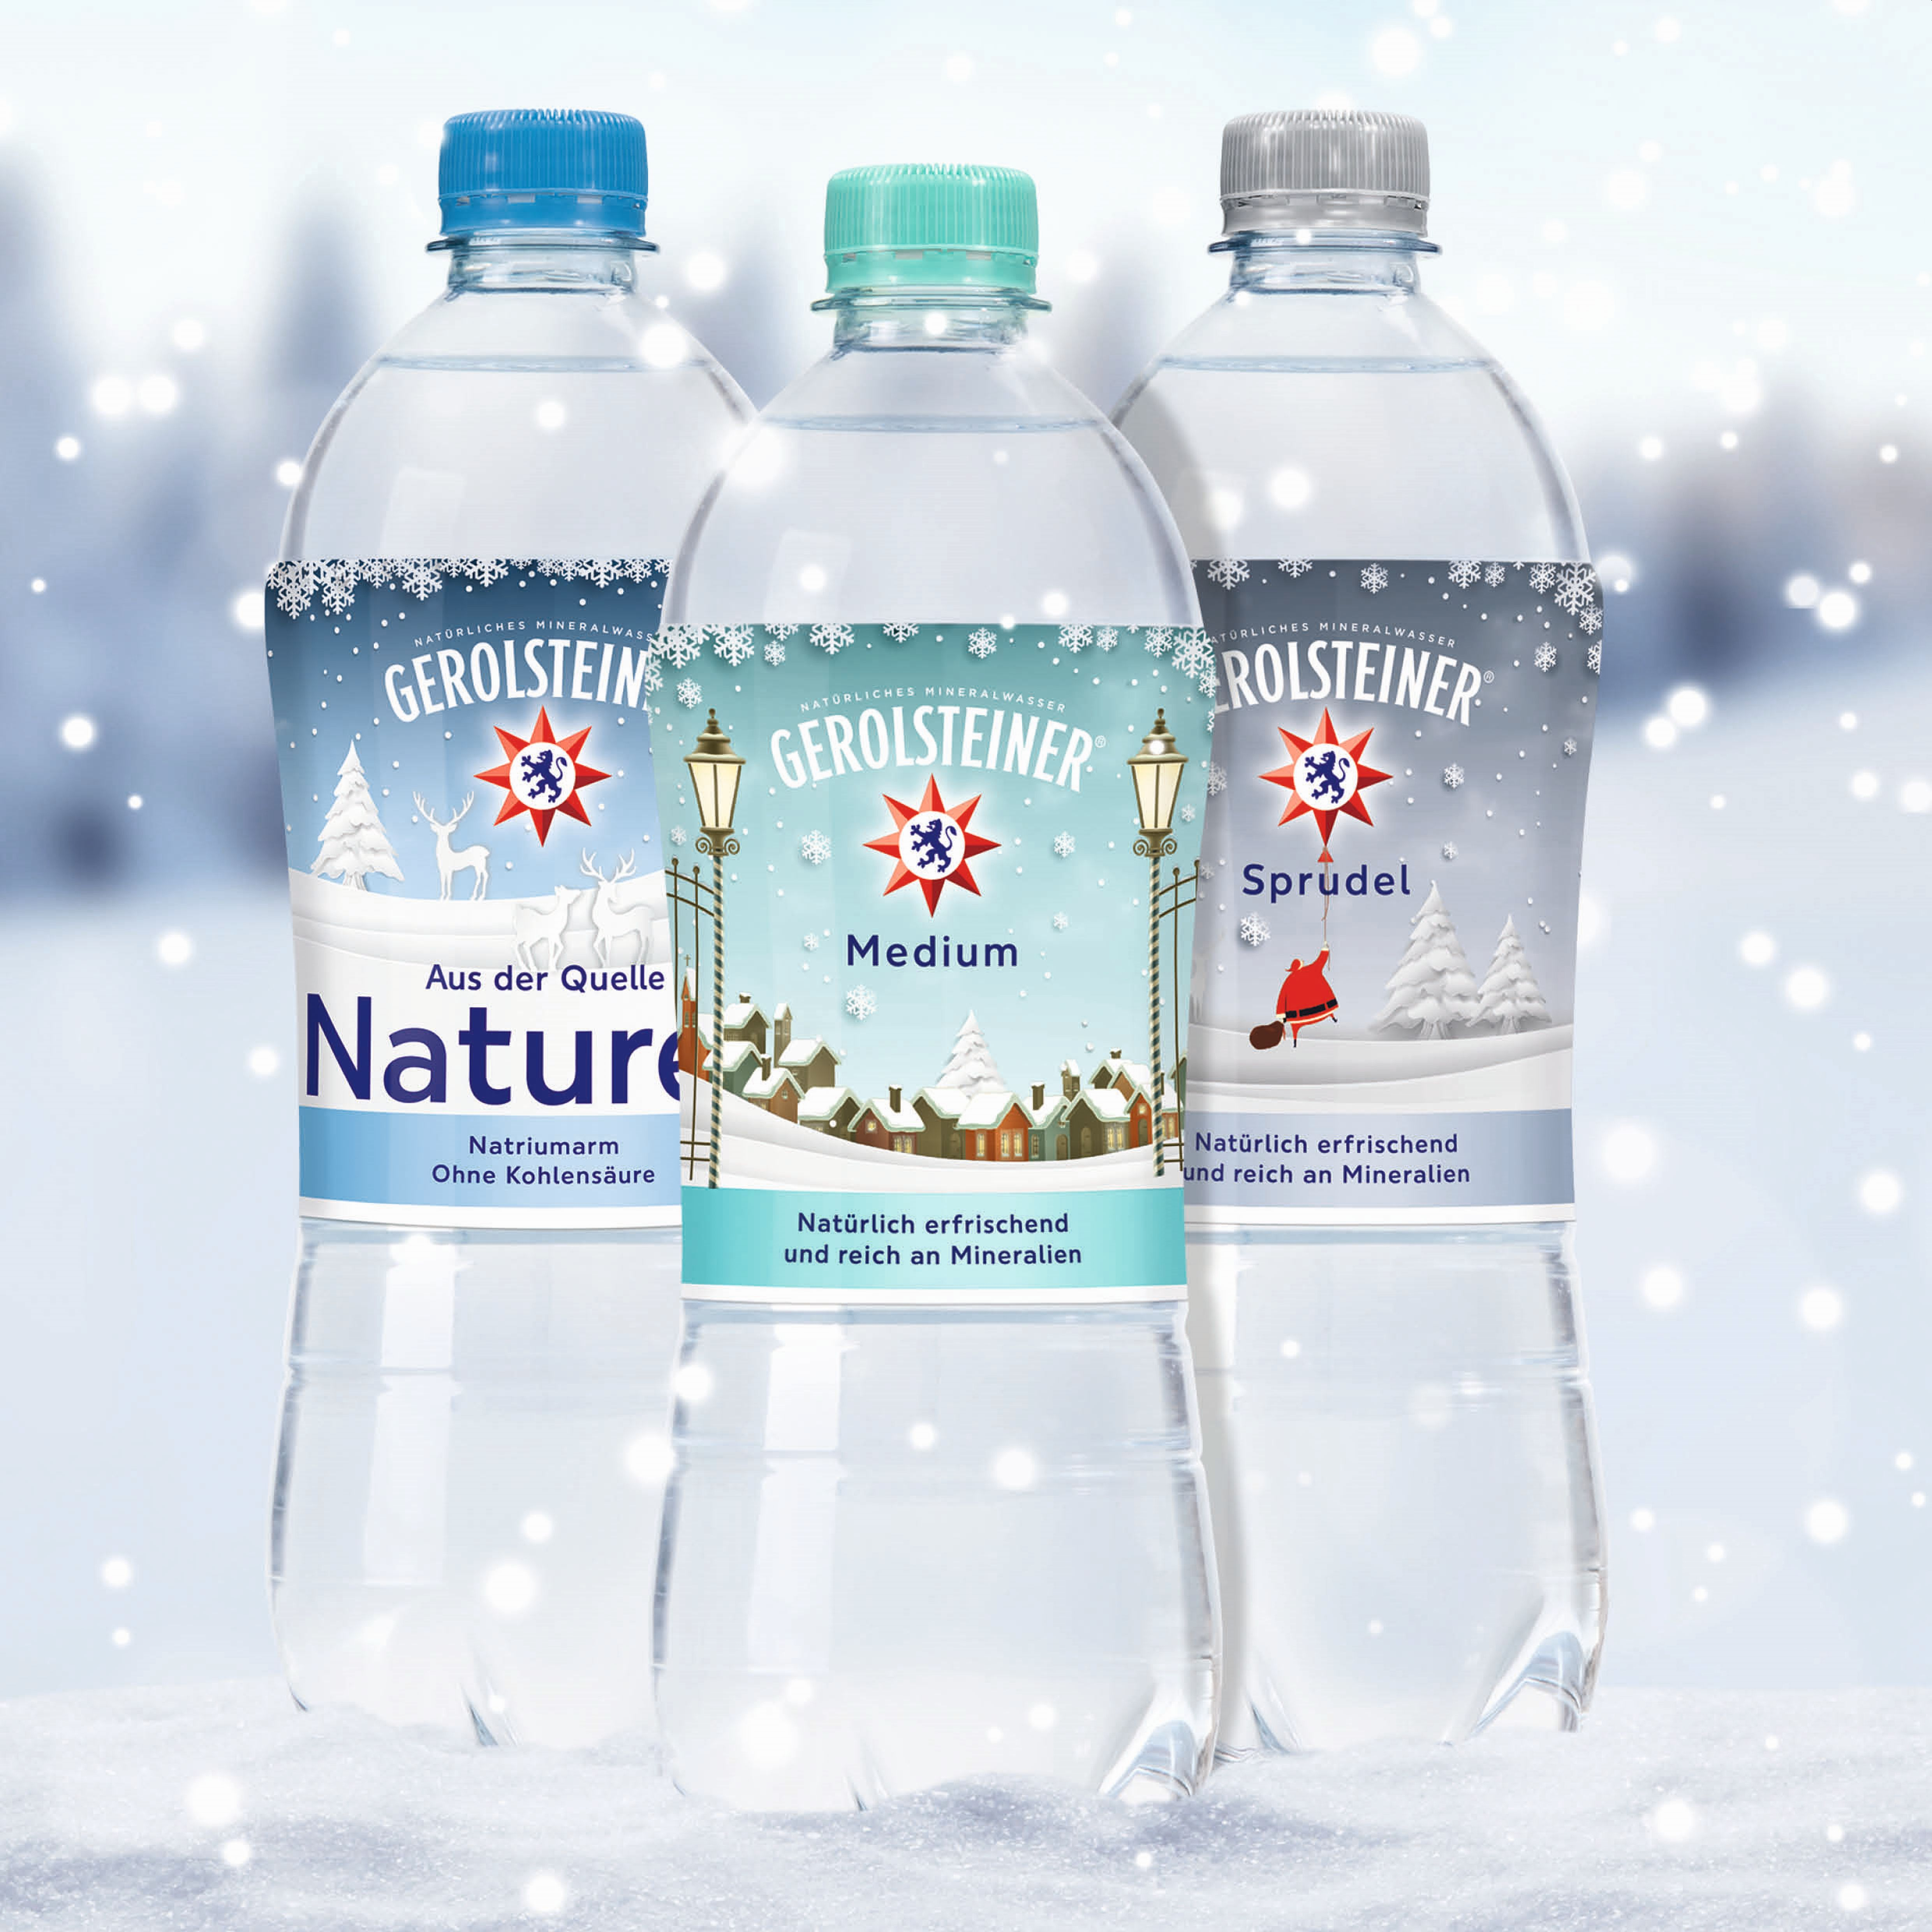 Winterzauber: Gerolsteiner Mineralwasser in einer Winter-Edition